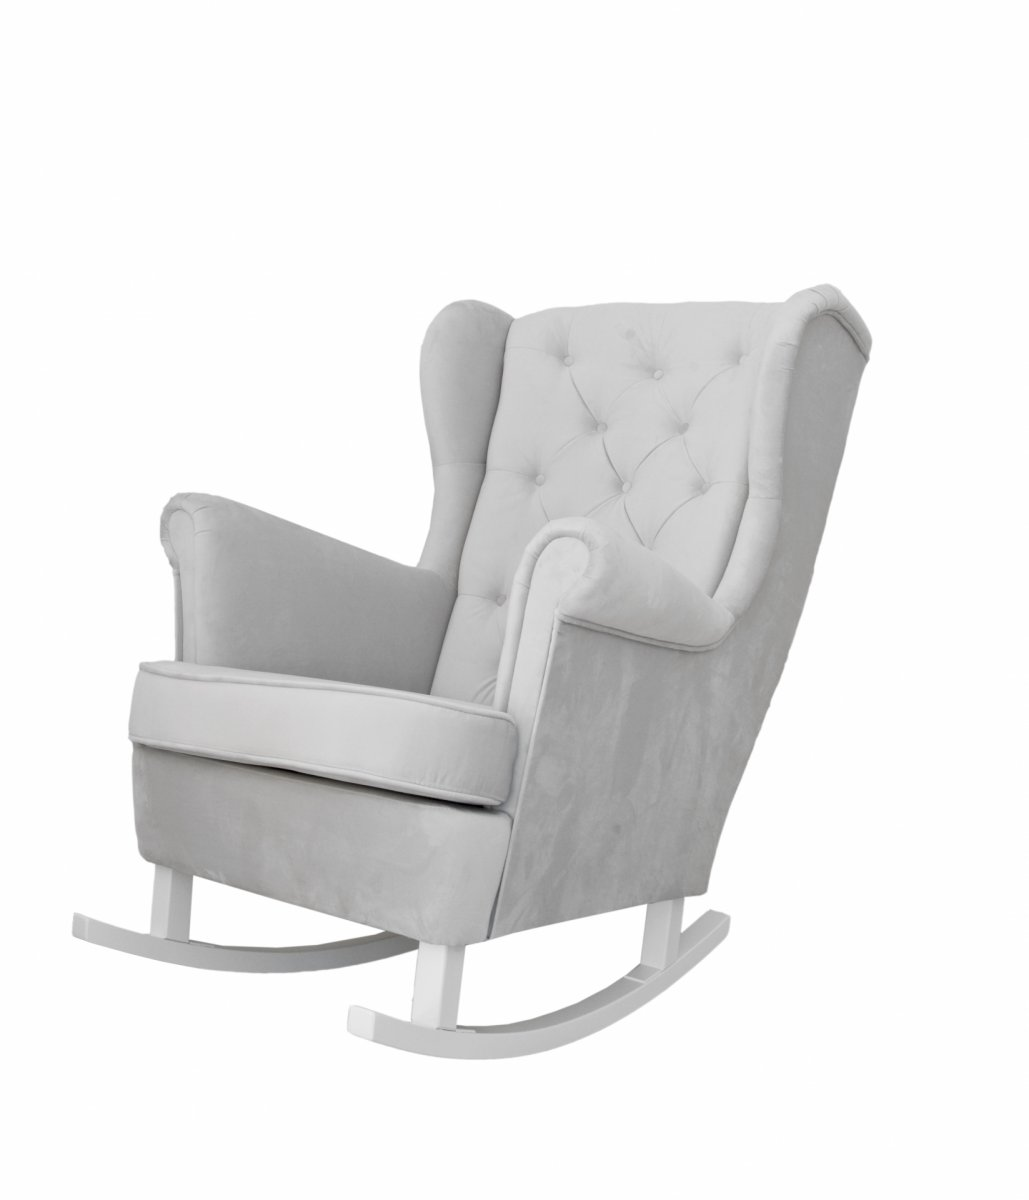 Grey rocking armchair - Armchairs - Furniture - Shop on ...